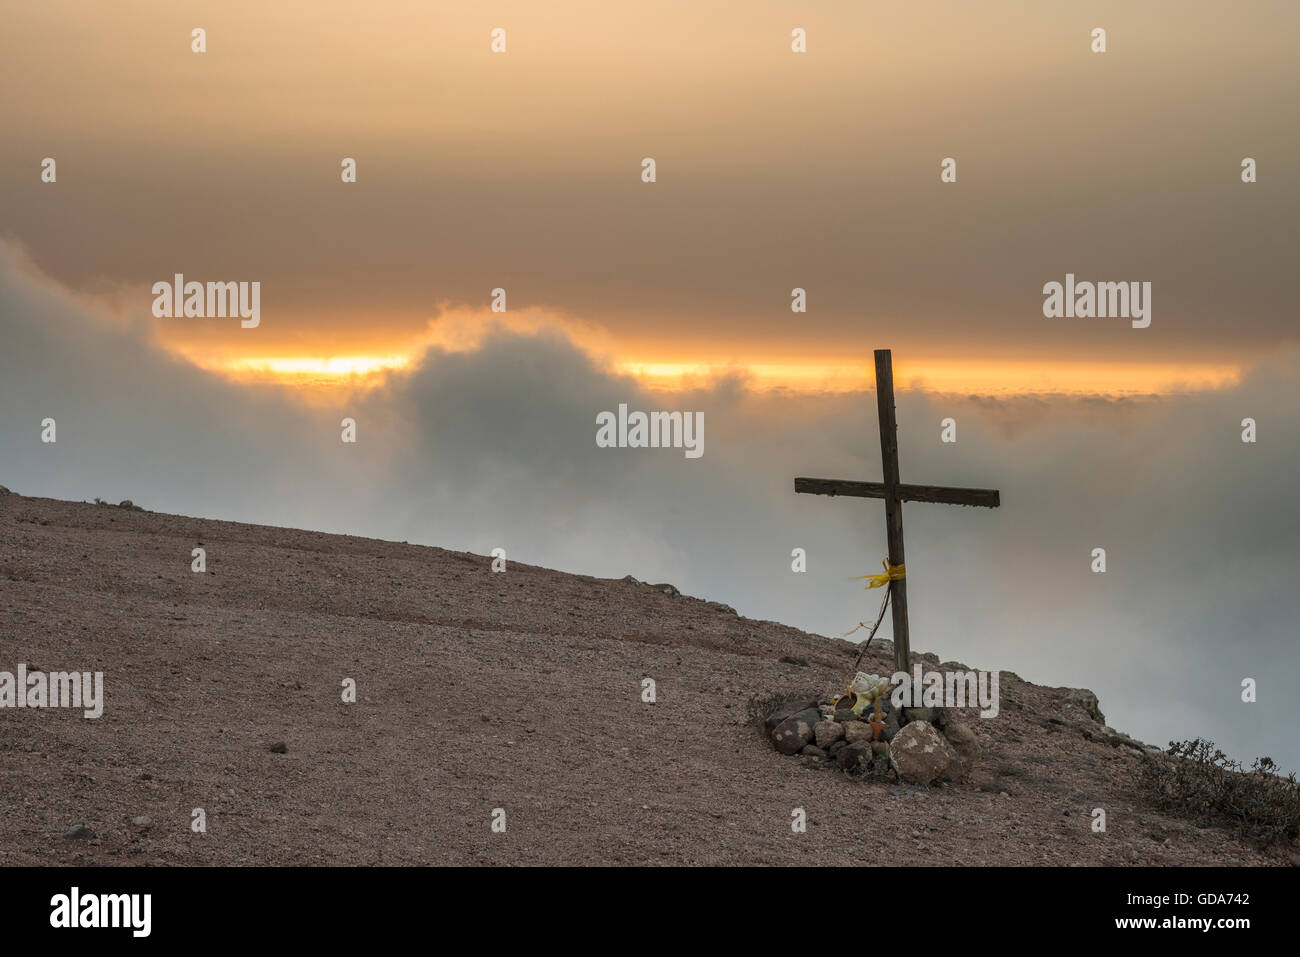 misty-evening-at-las-nieves-lanzarote-with-christian-cross-at-edge-GDA742.jpg